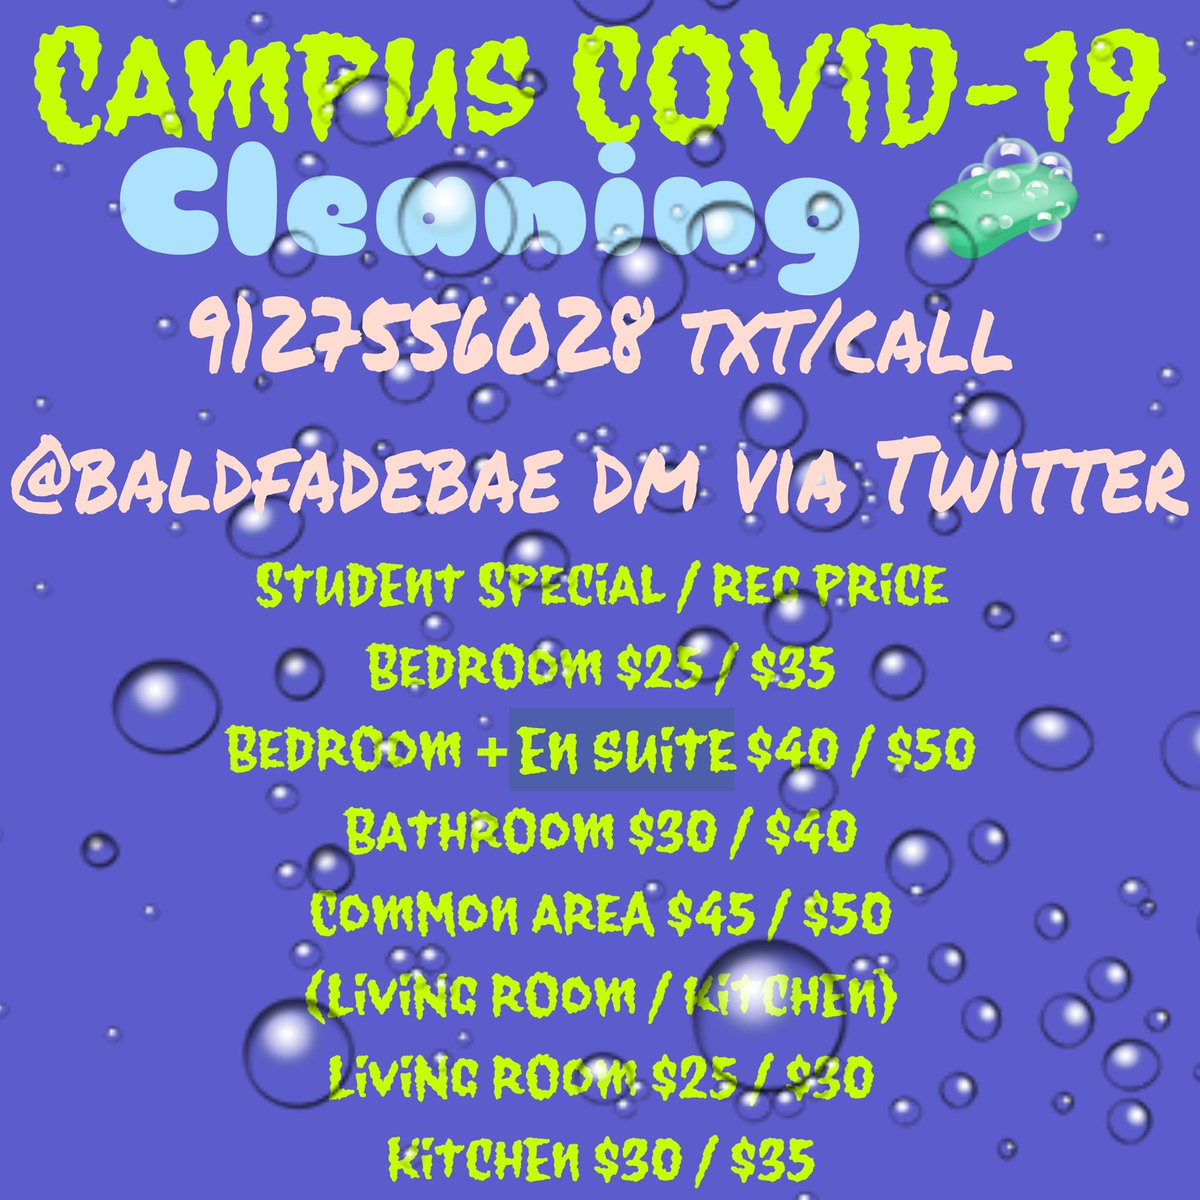 A clean space is a happy and healthy one. I am doing a affordable cleaning service geared towards GSU and SSU students. It's also open to anyone needing a little help keeping their space clean through this Covid Pandemic 😷💗🧼 https://t.co/h6okxAtw7q